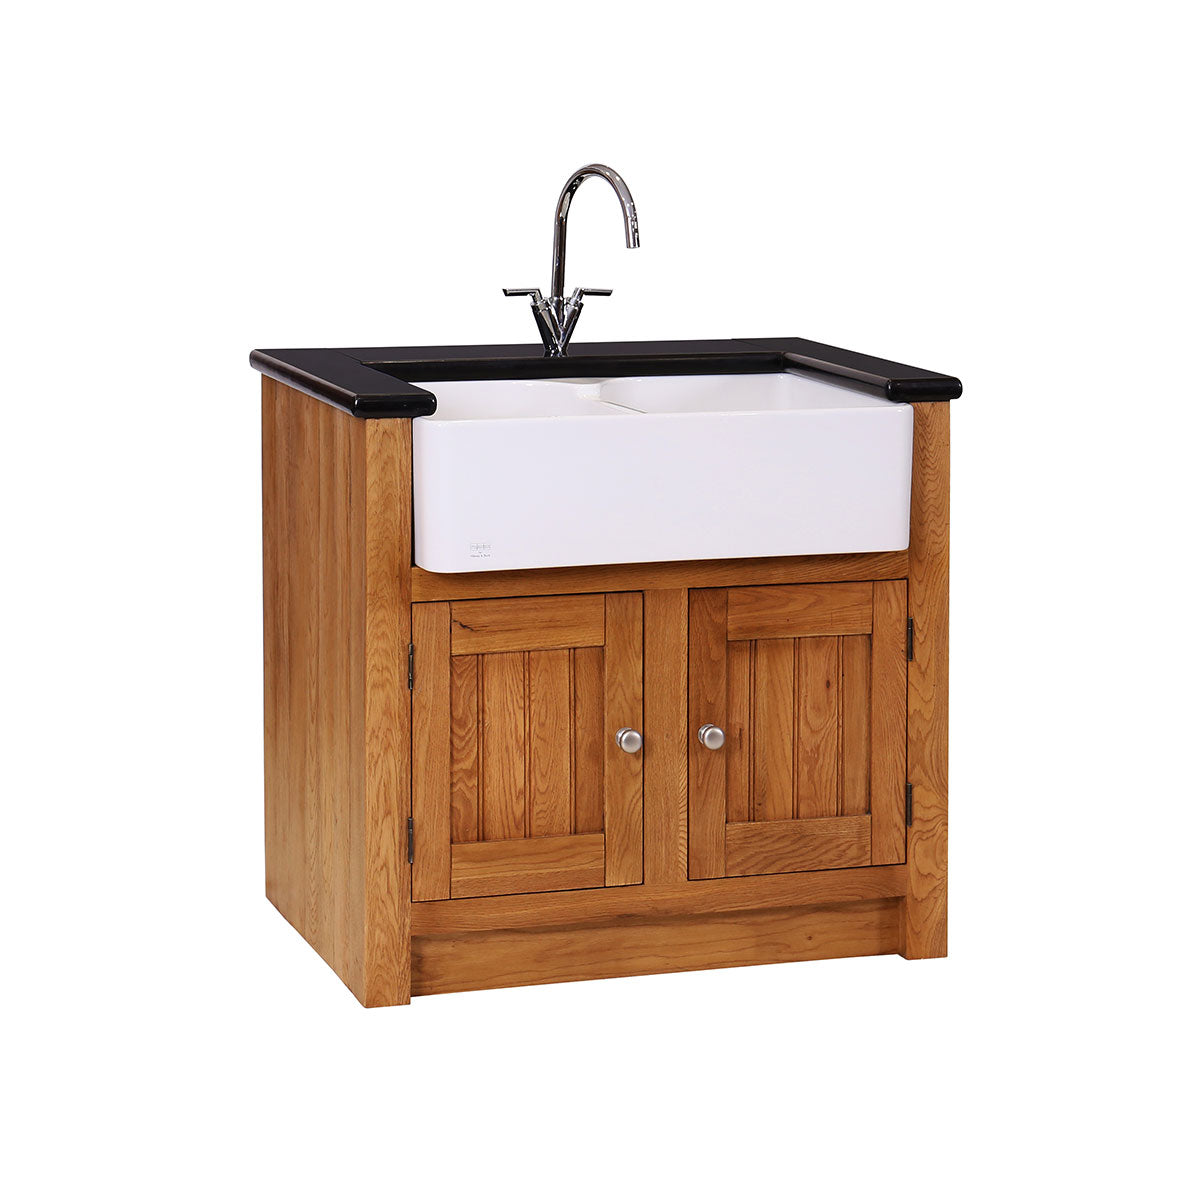 Granite Double Belfast Sink Unit( BEVEL TOP)